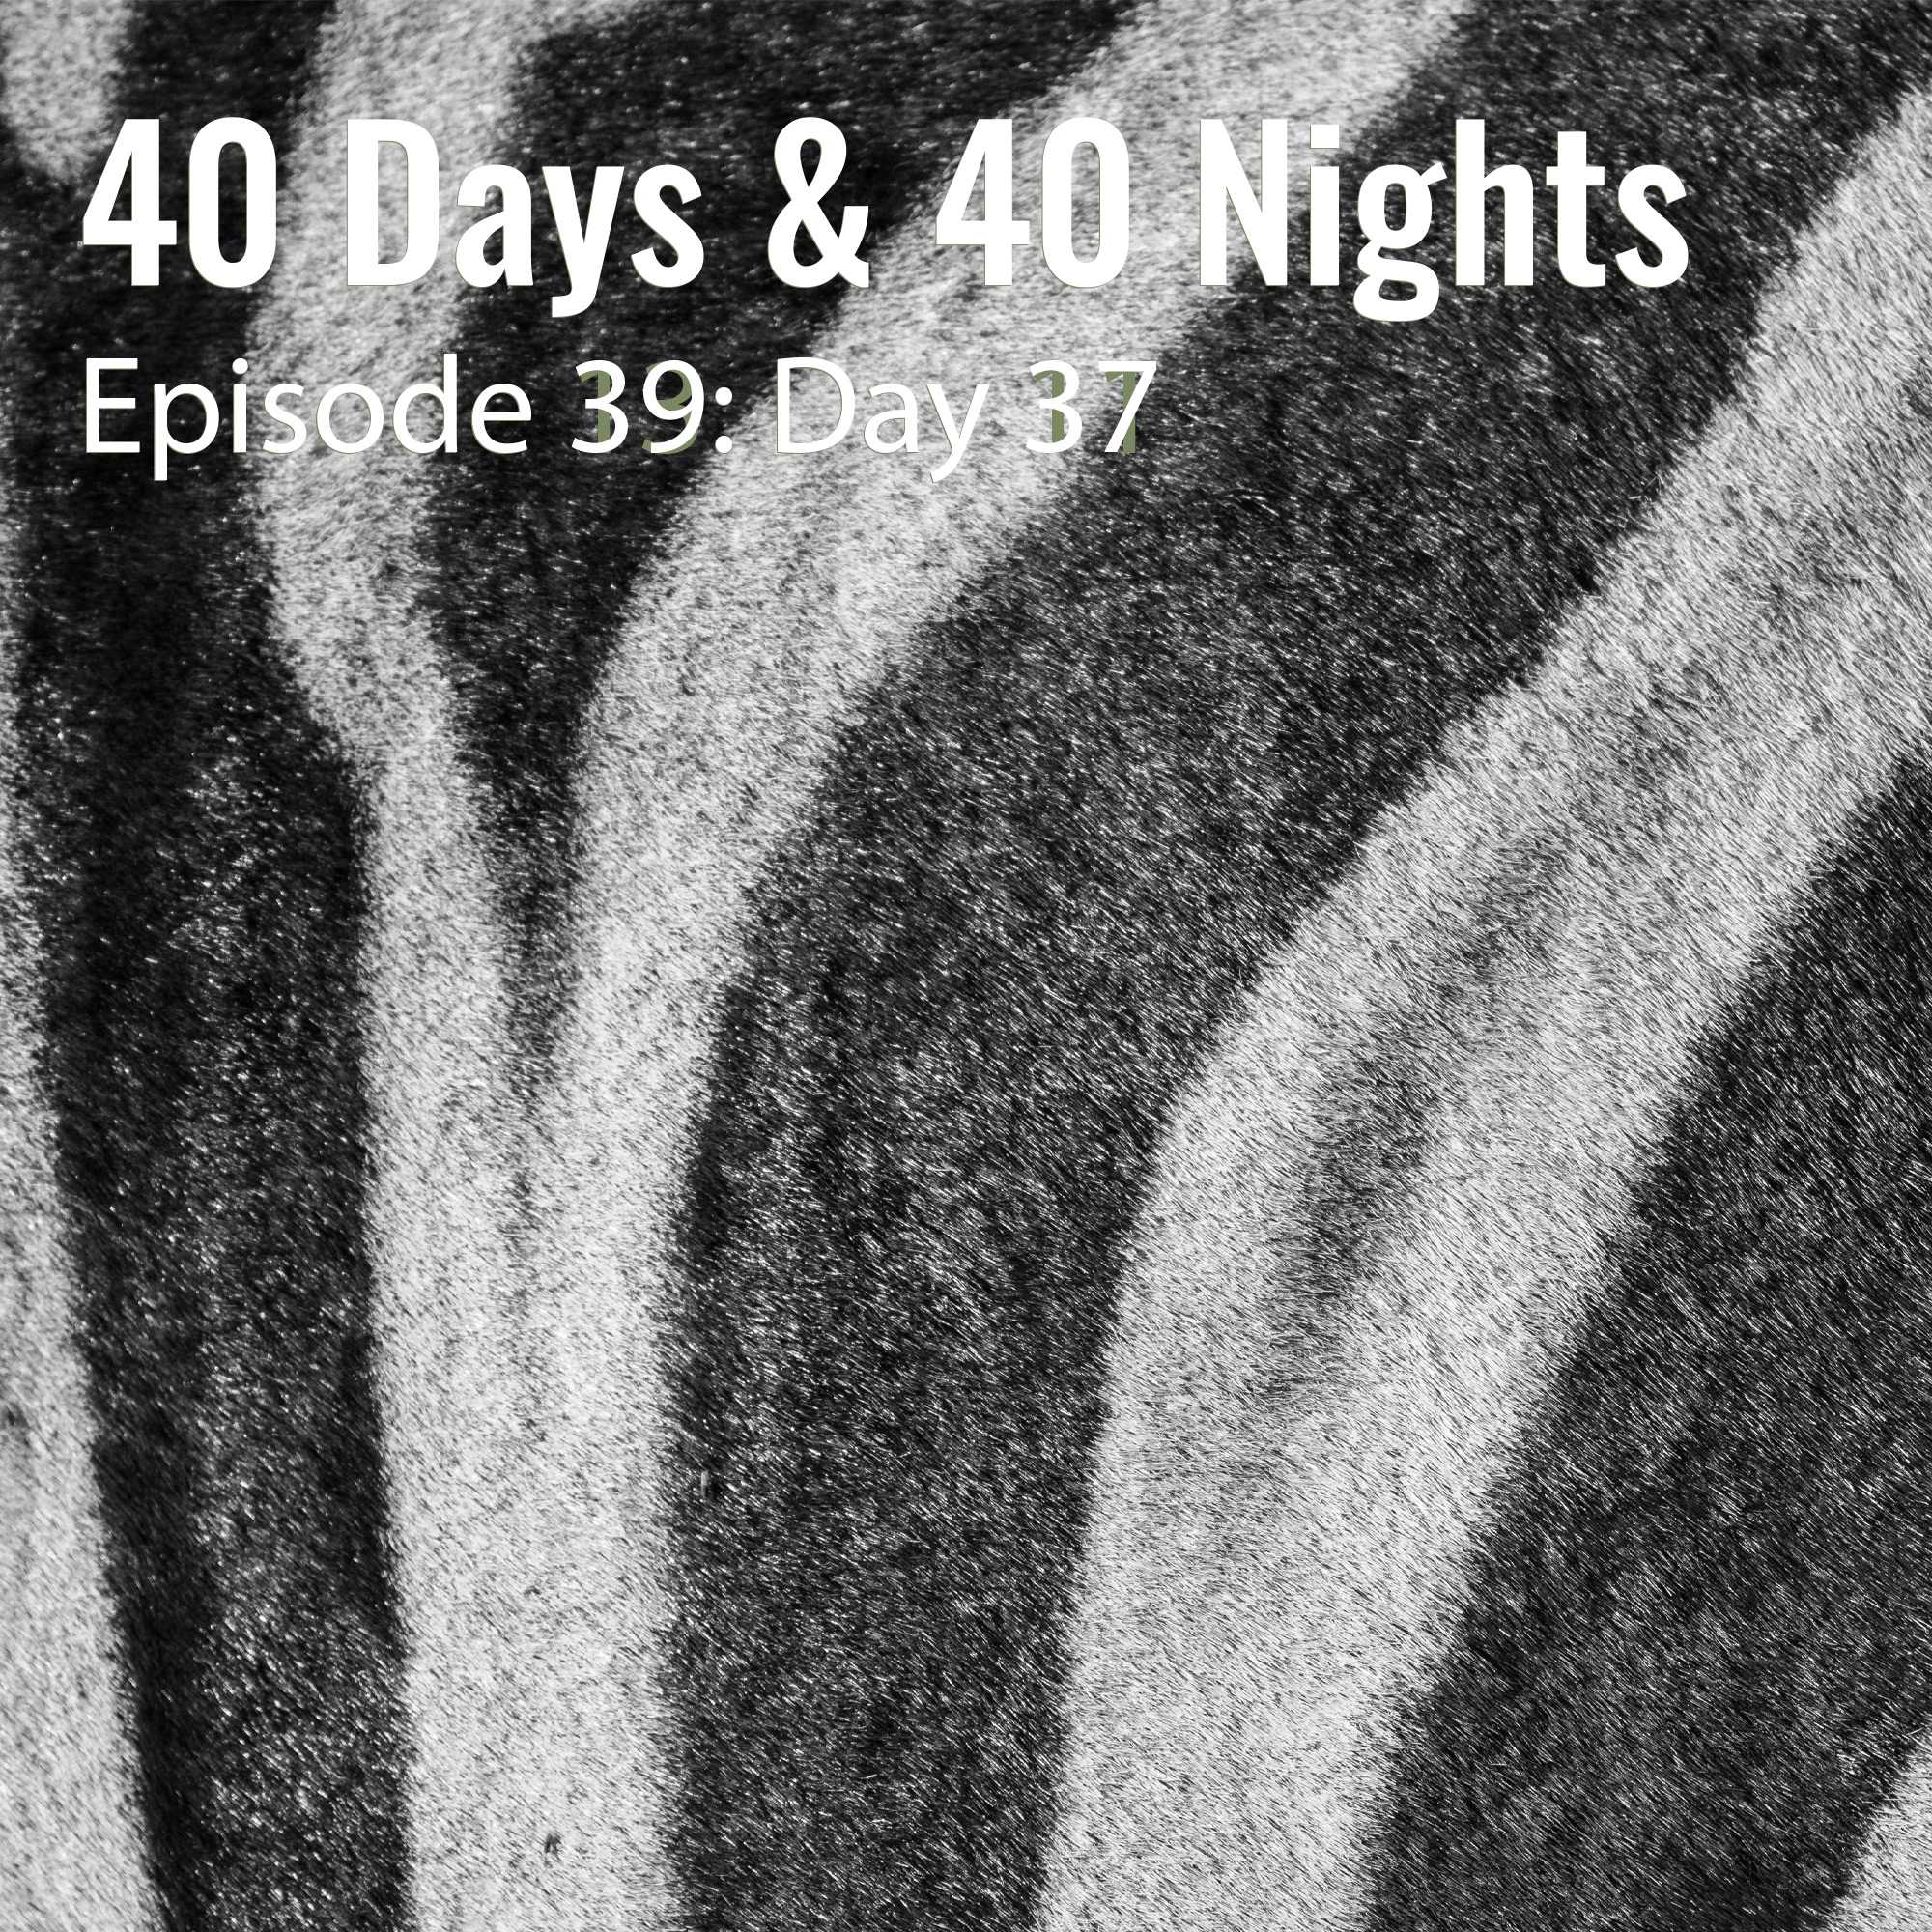 Day-37 40 Days and 40 Nights Boyd Varty